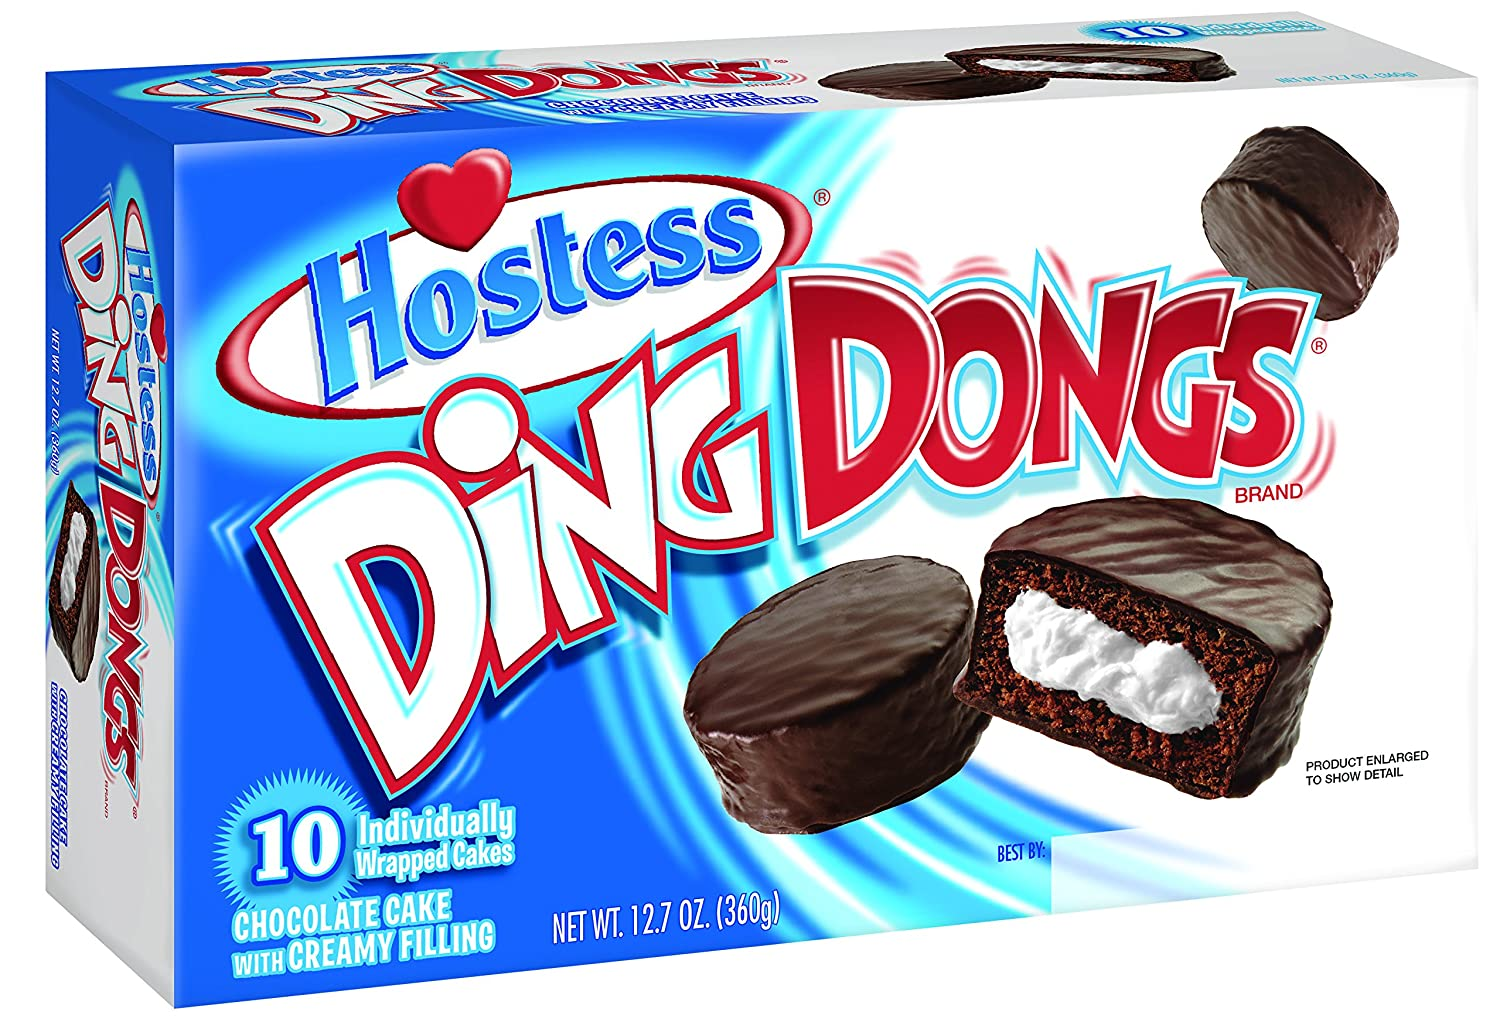 Hostess Ding Dongs, Original Chocolate, 10 Count (Pack of 6)